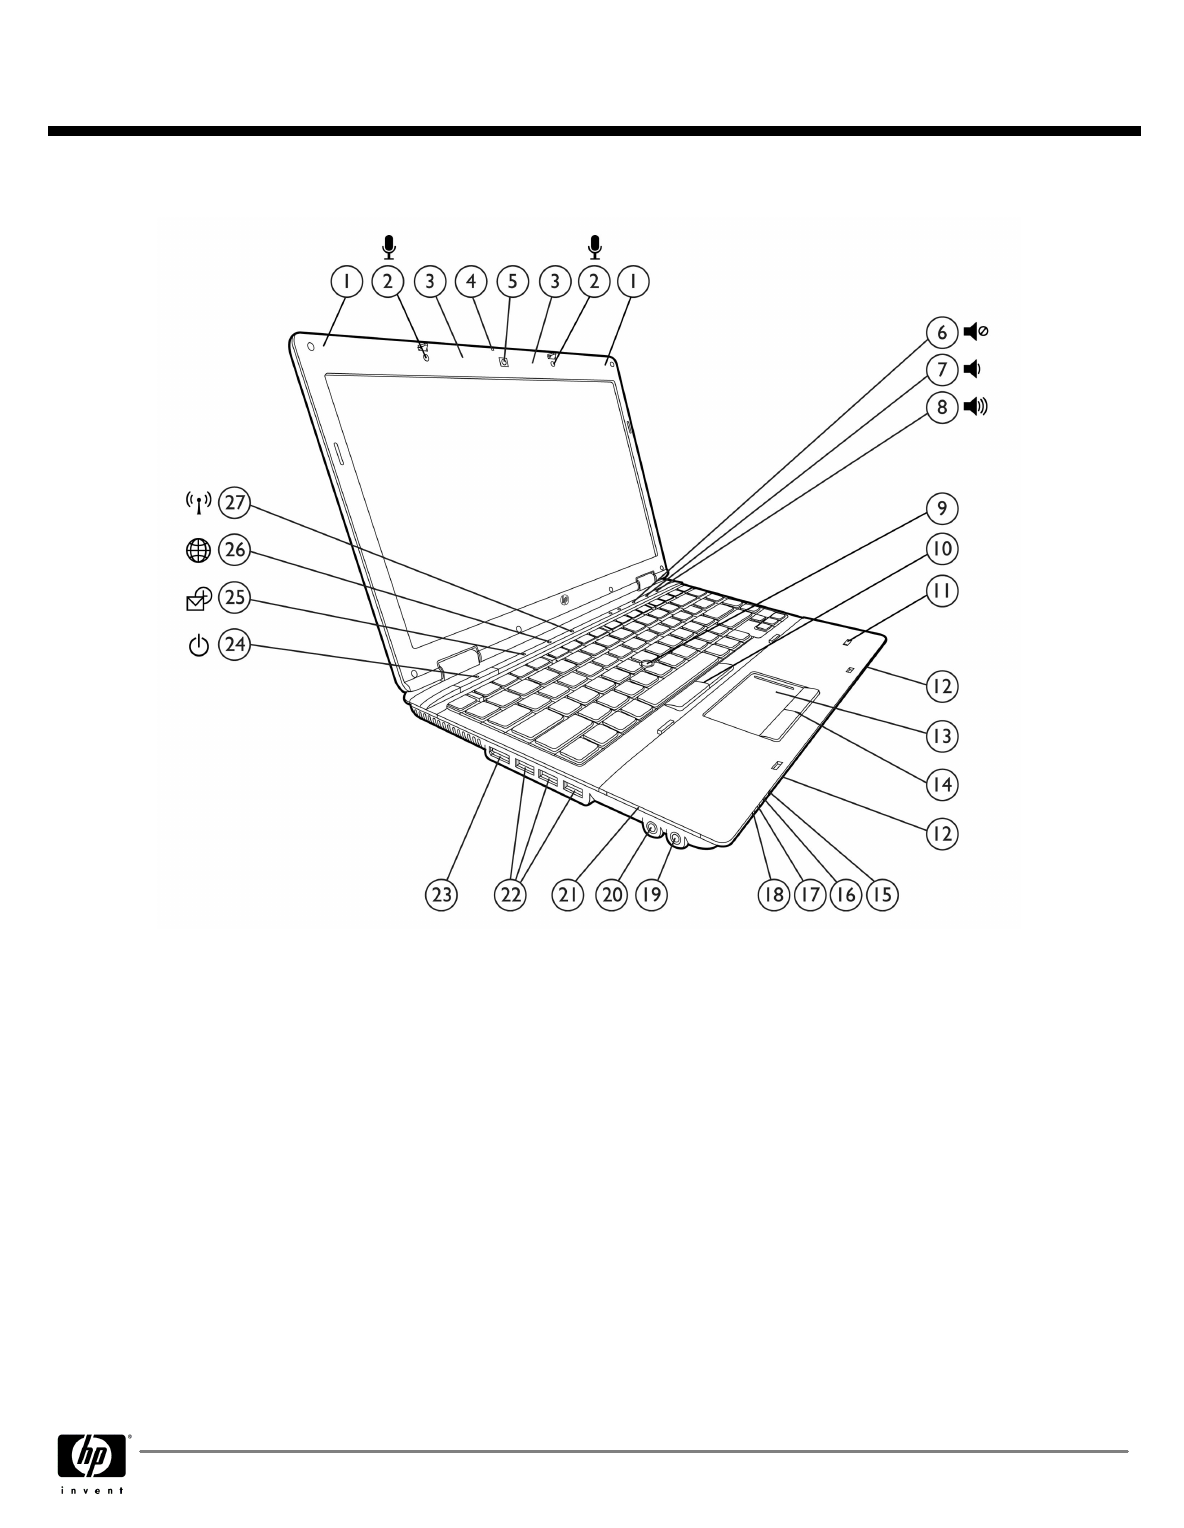 HP (Hewlett-Packard) Laptop 6440B User Guide